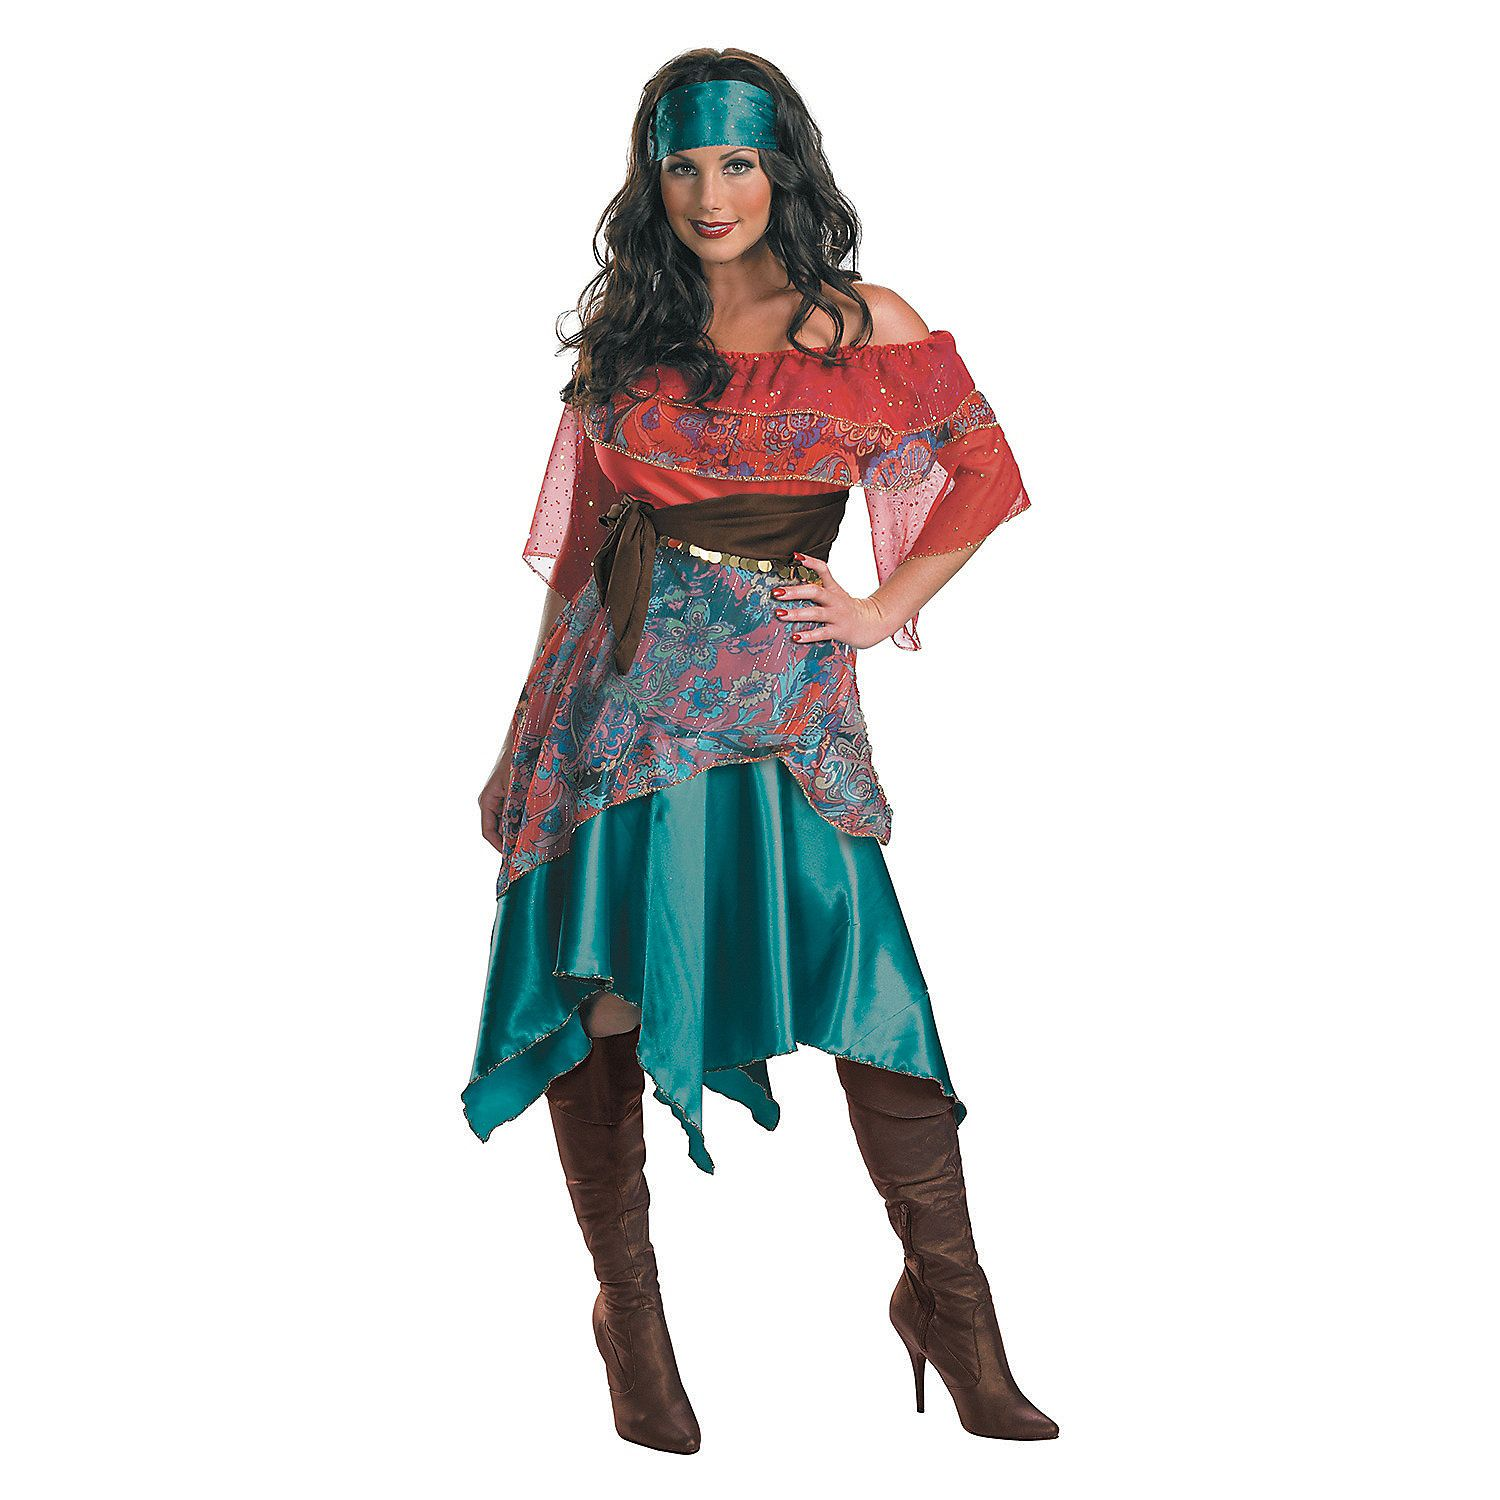 Let The Gypsy In You Run Free For Your Next Party Costume Idea With This Delightful Bohemian Women